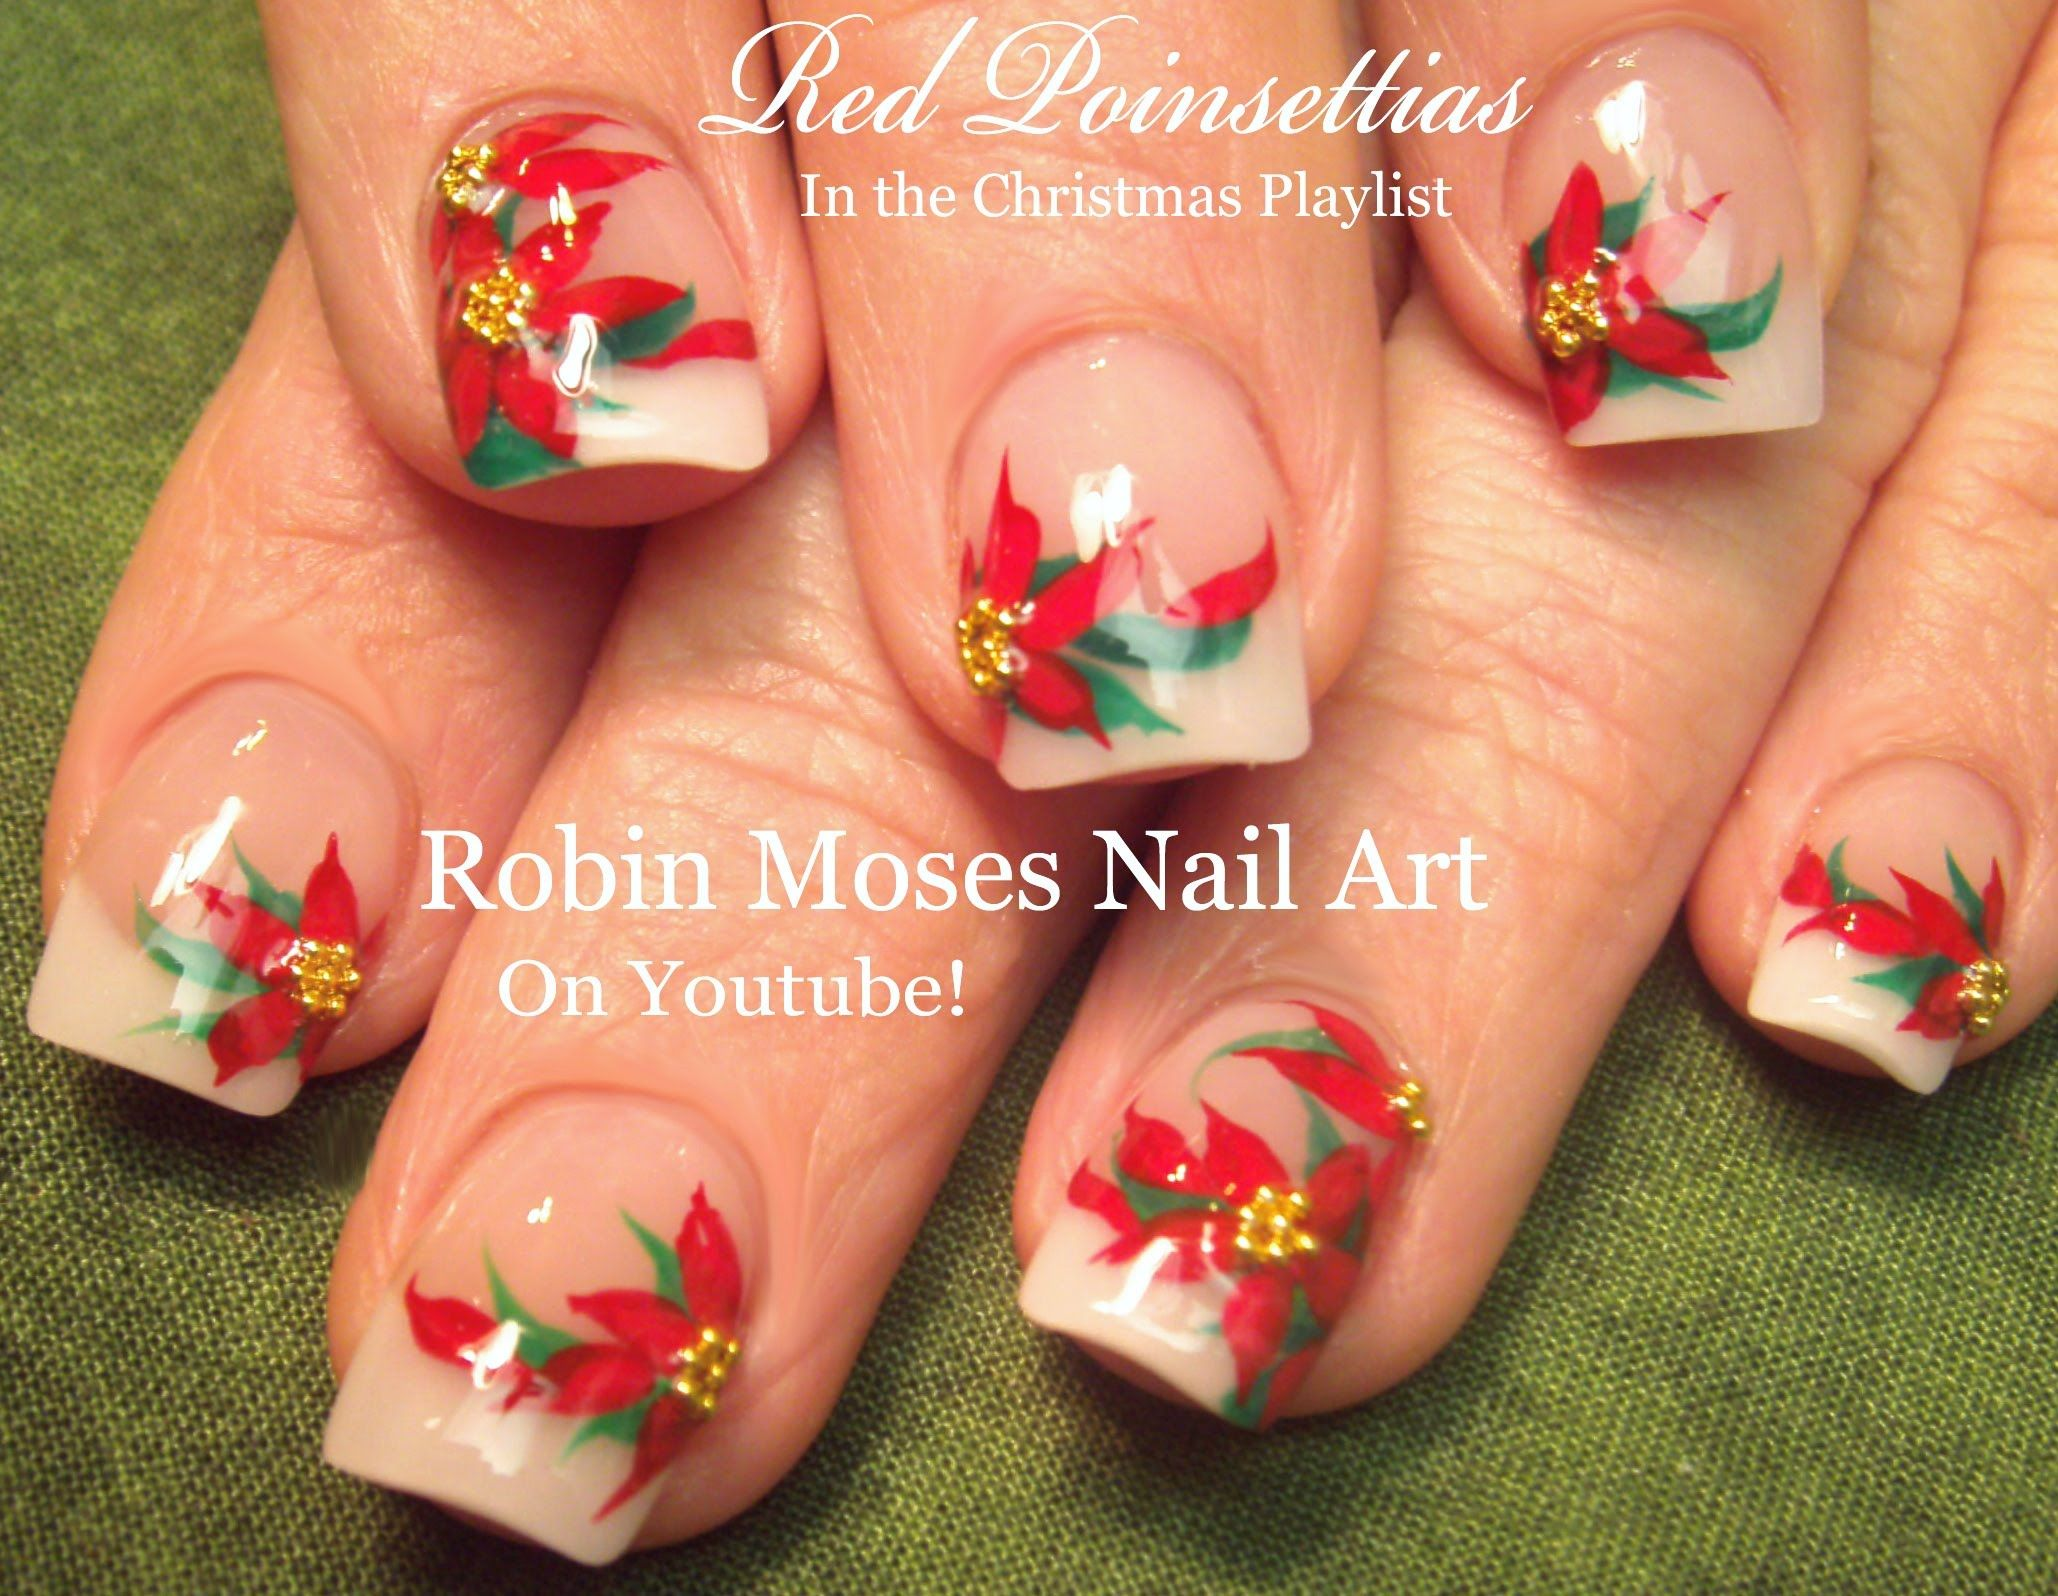 Nail art designs besides red nail art designs on top nail art images - Red Poinsettia Nail Art Design Easy Christmas Nails Tutorial